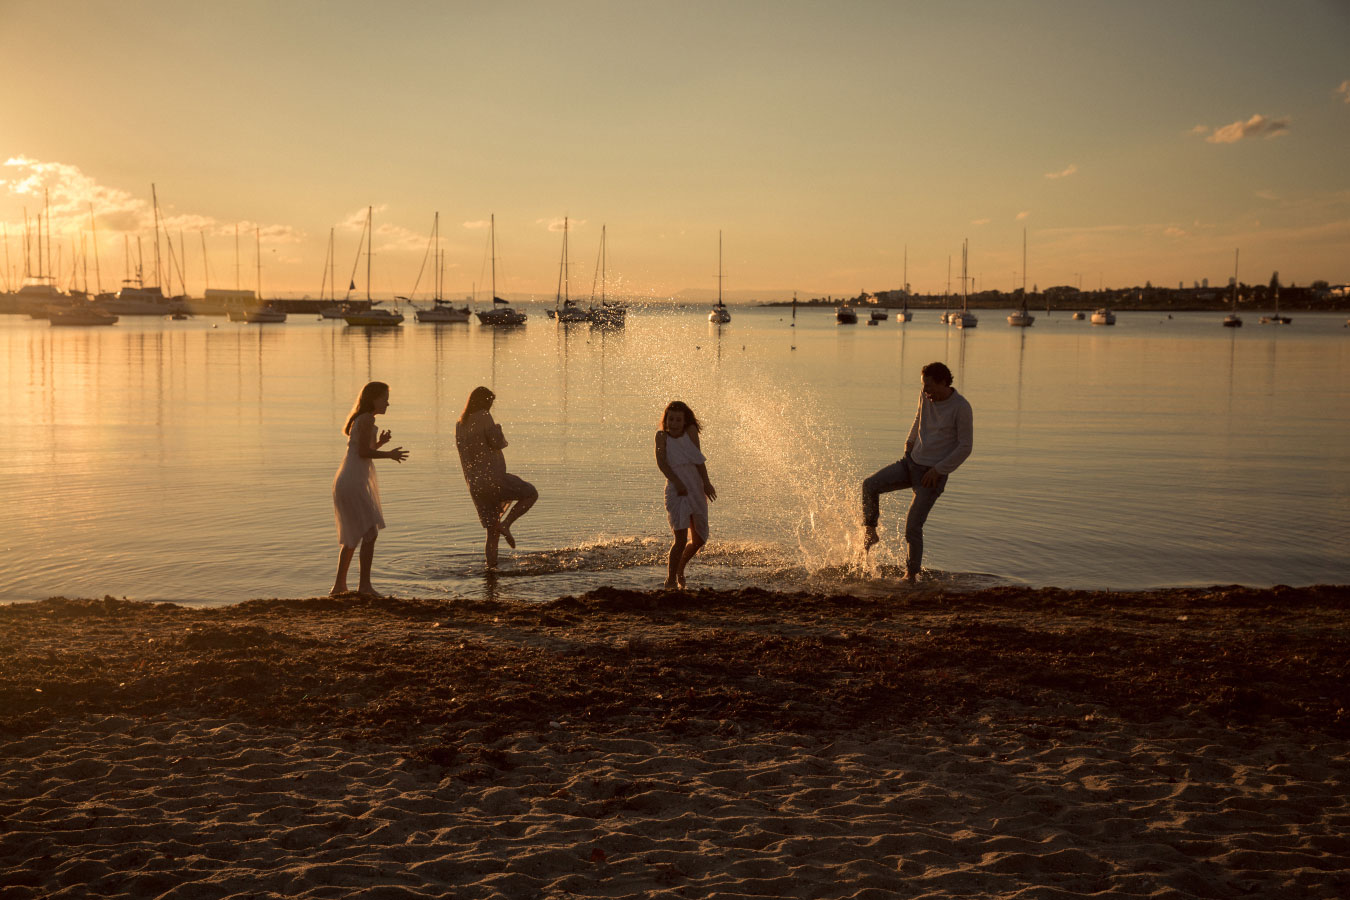 family-photographer-hampton-lifestyle-beach-sunset-98